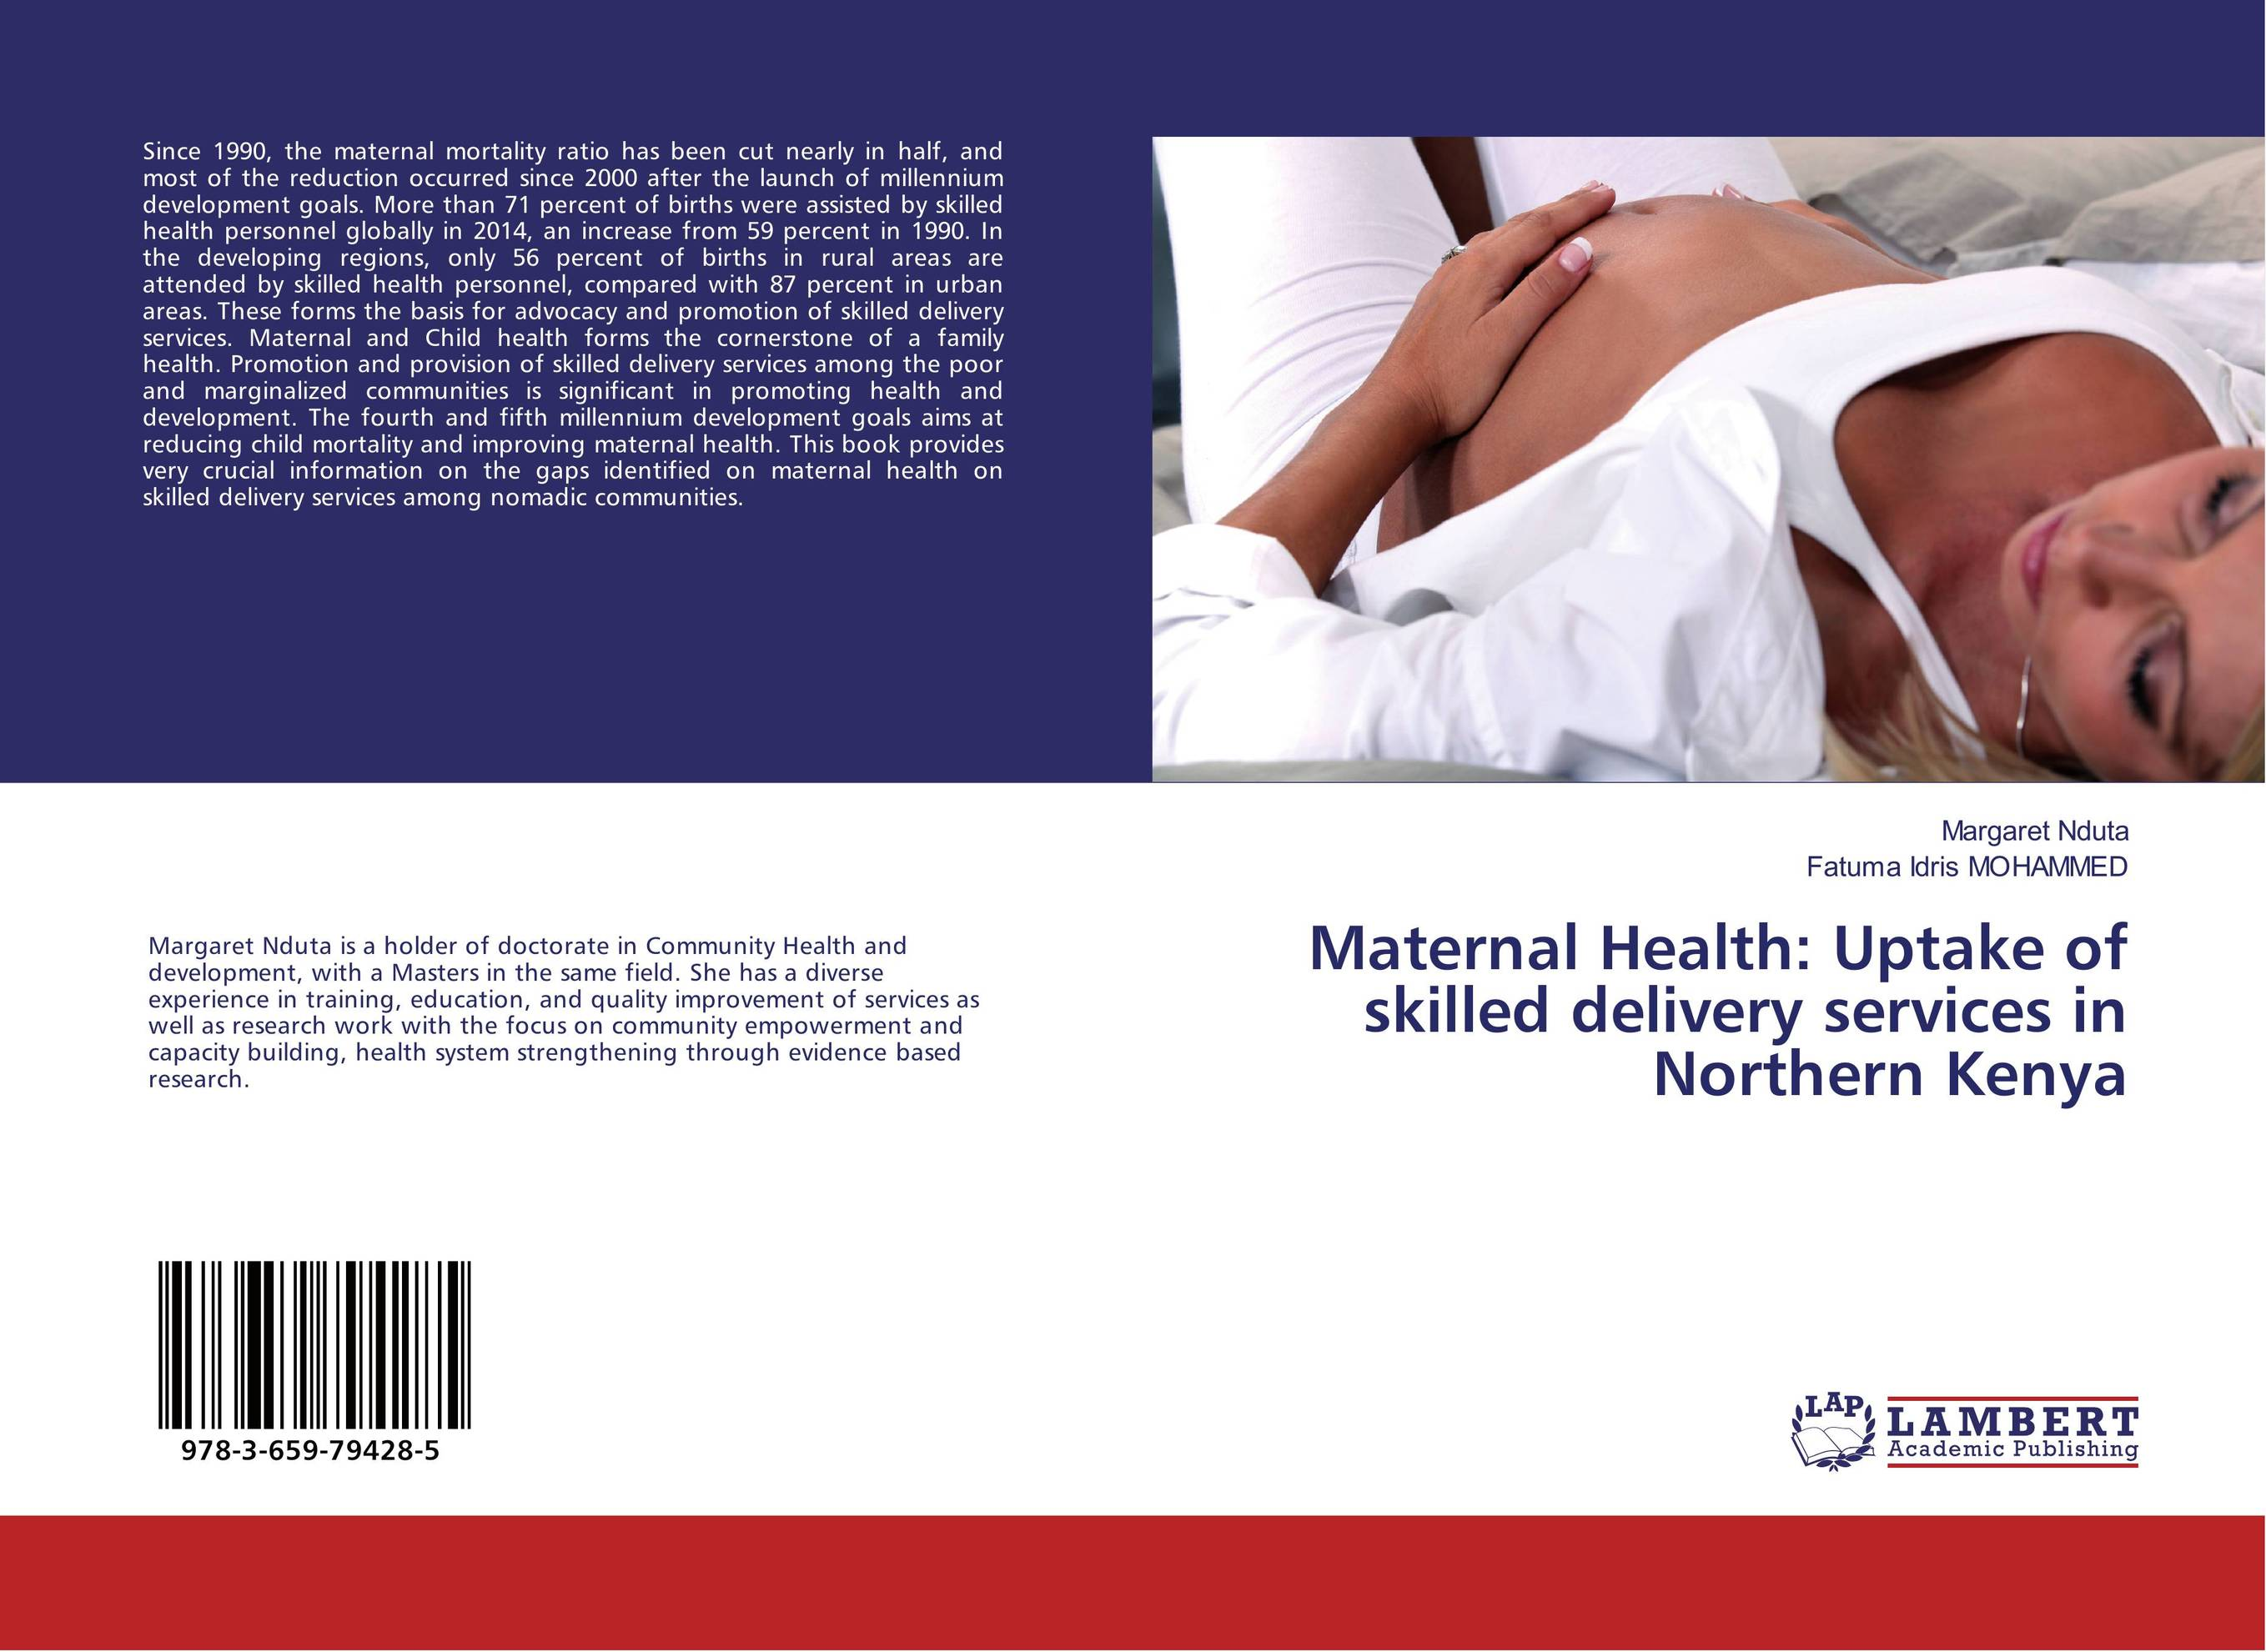 Maternal Health: Uptake of skilled delivery services in Northern Kenya